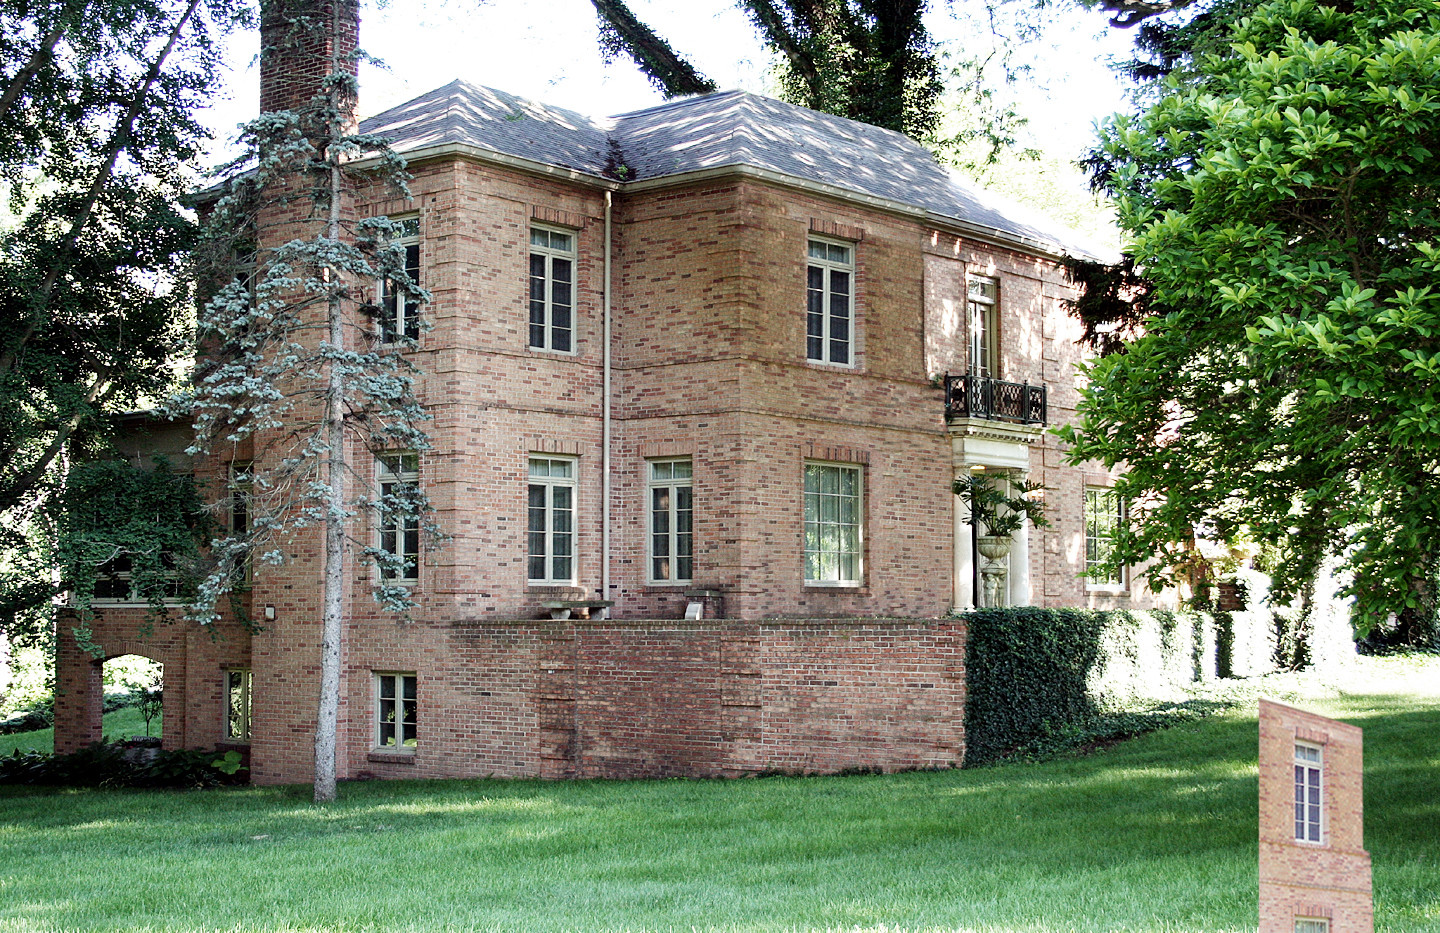 Honeywell House